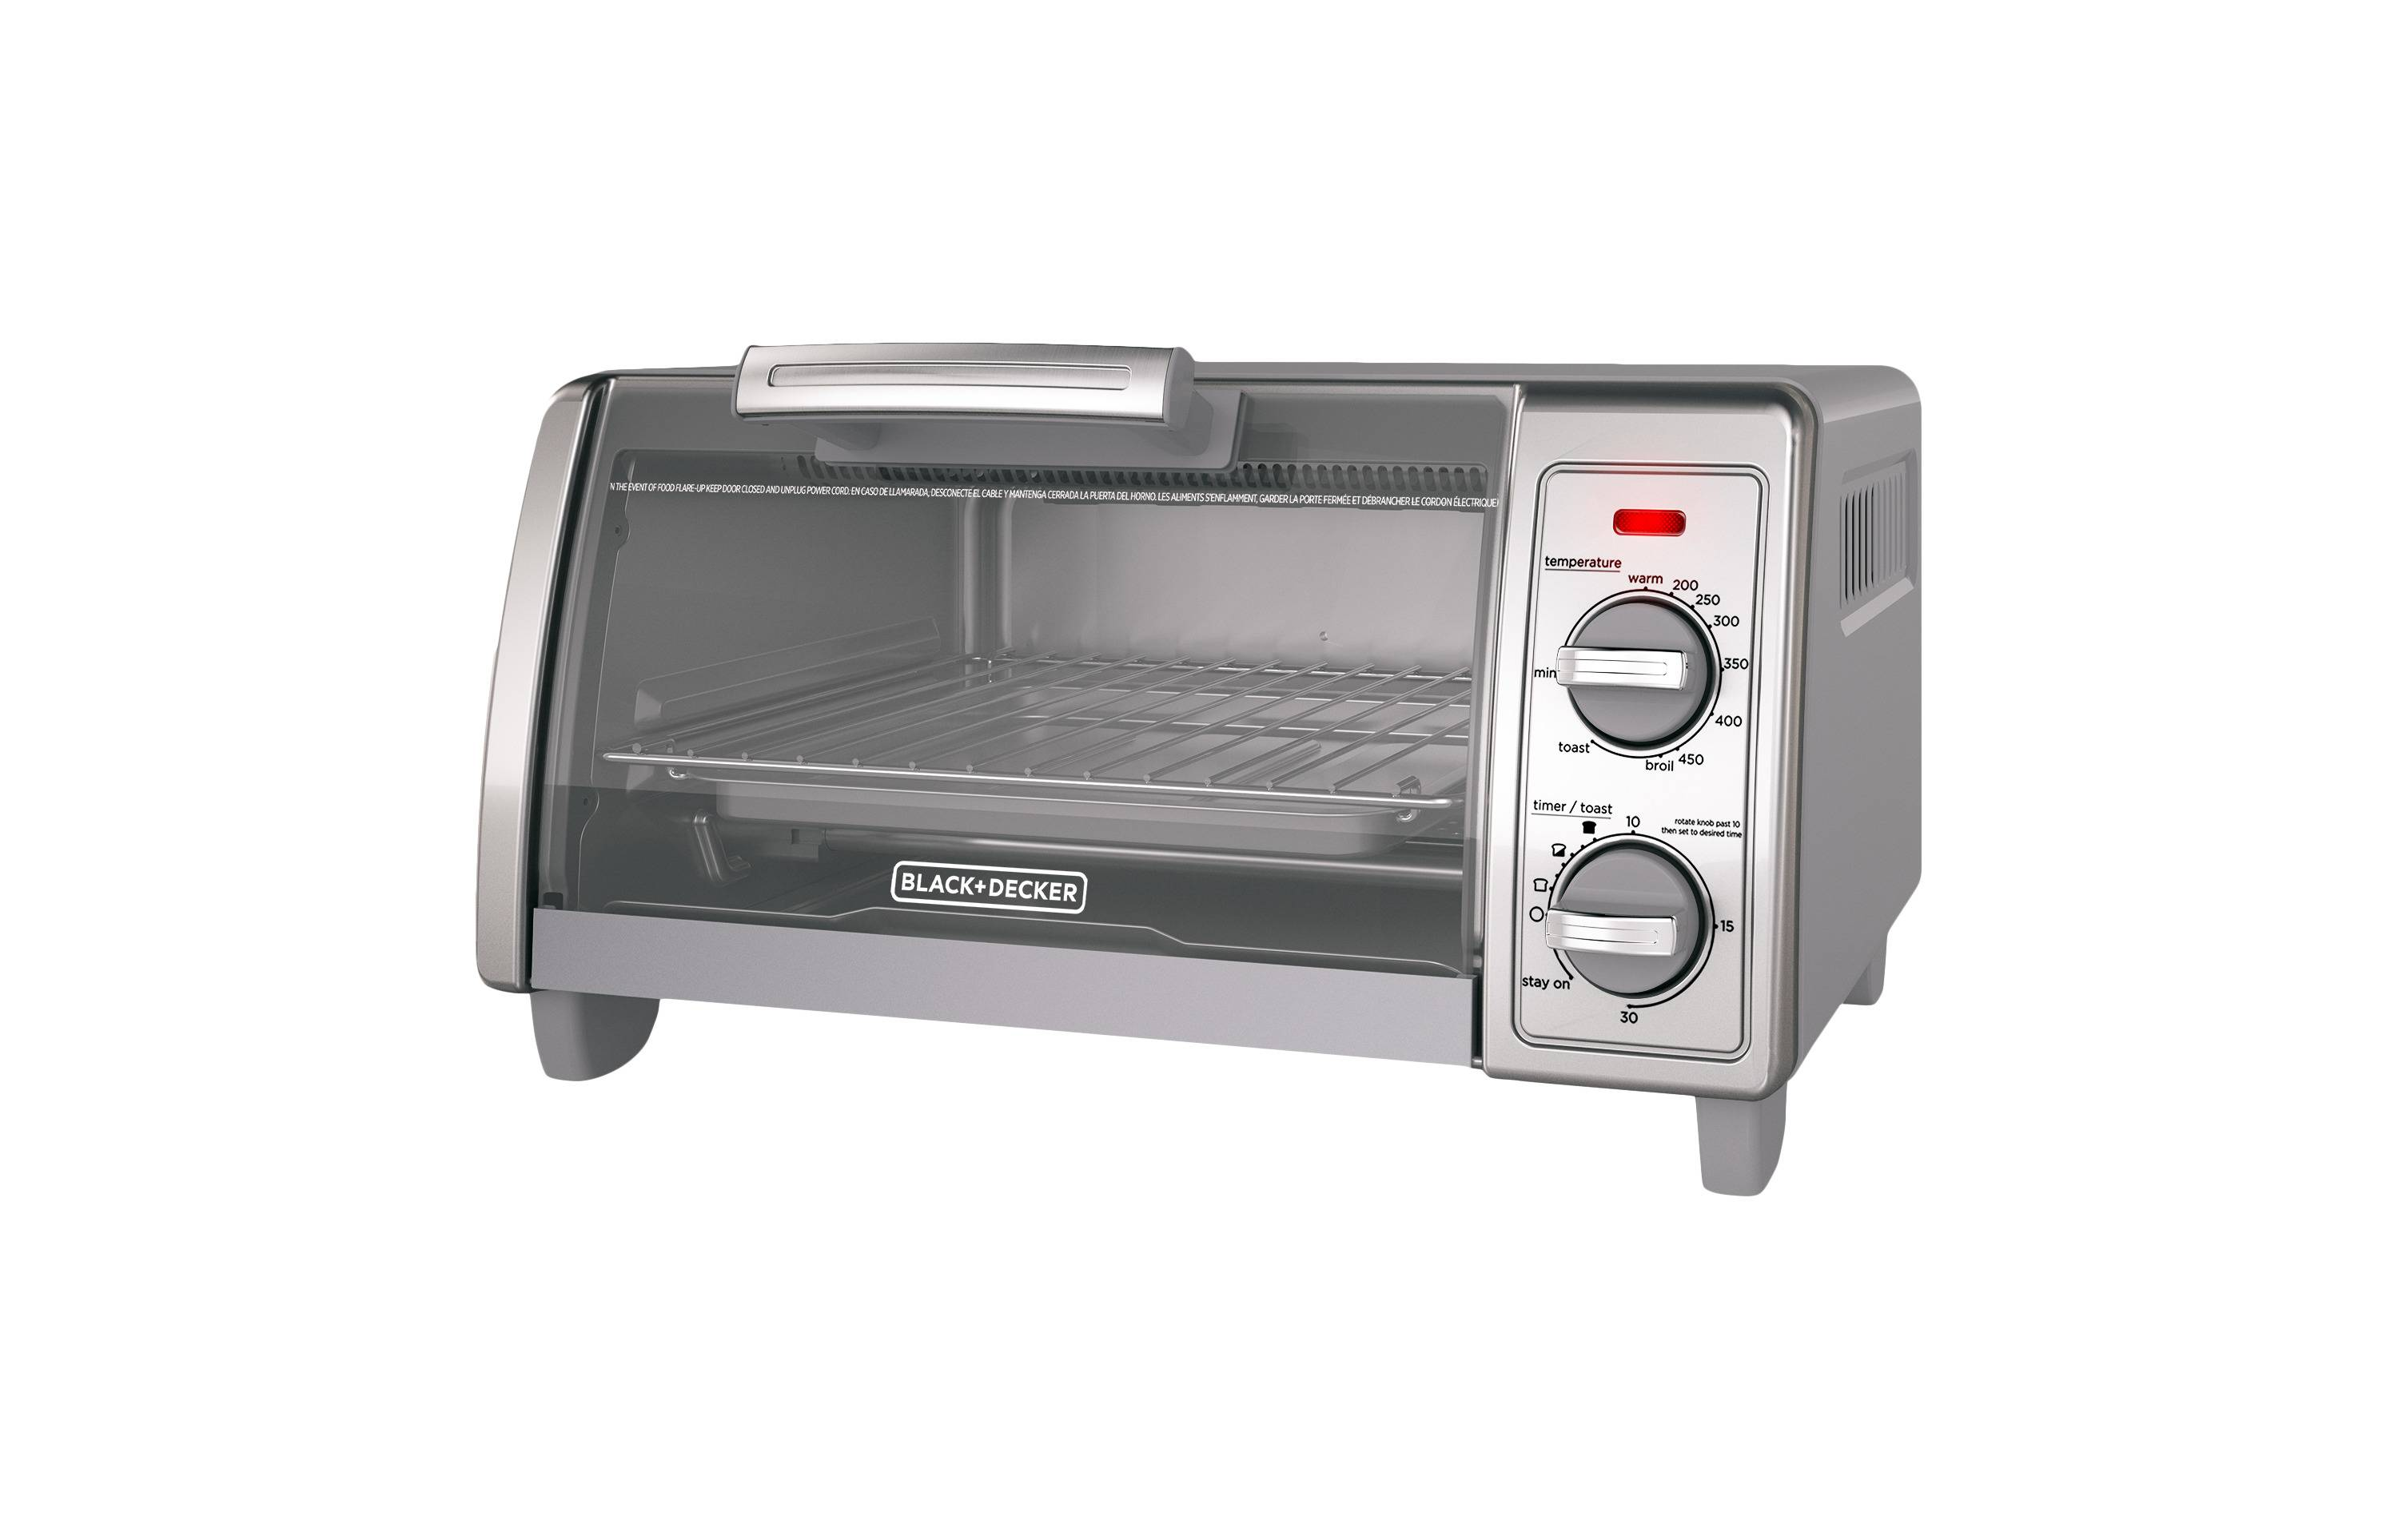 slice decker toaster free on garden black oven home over steel shipping overstock orders stainless product